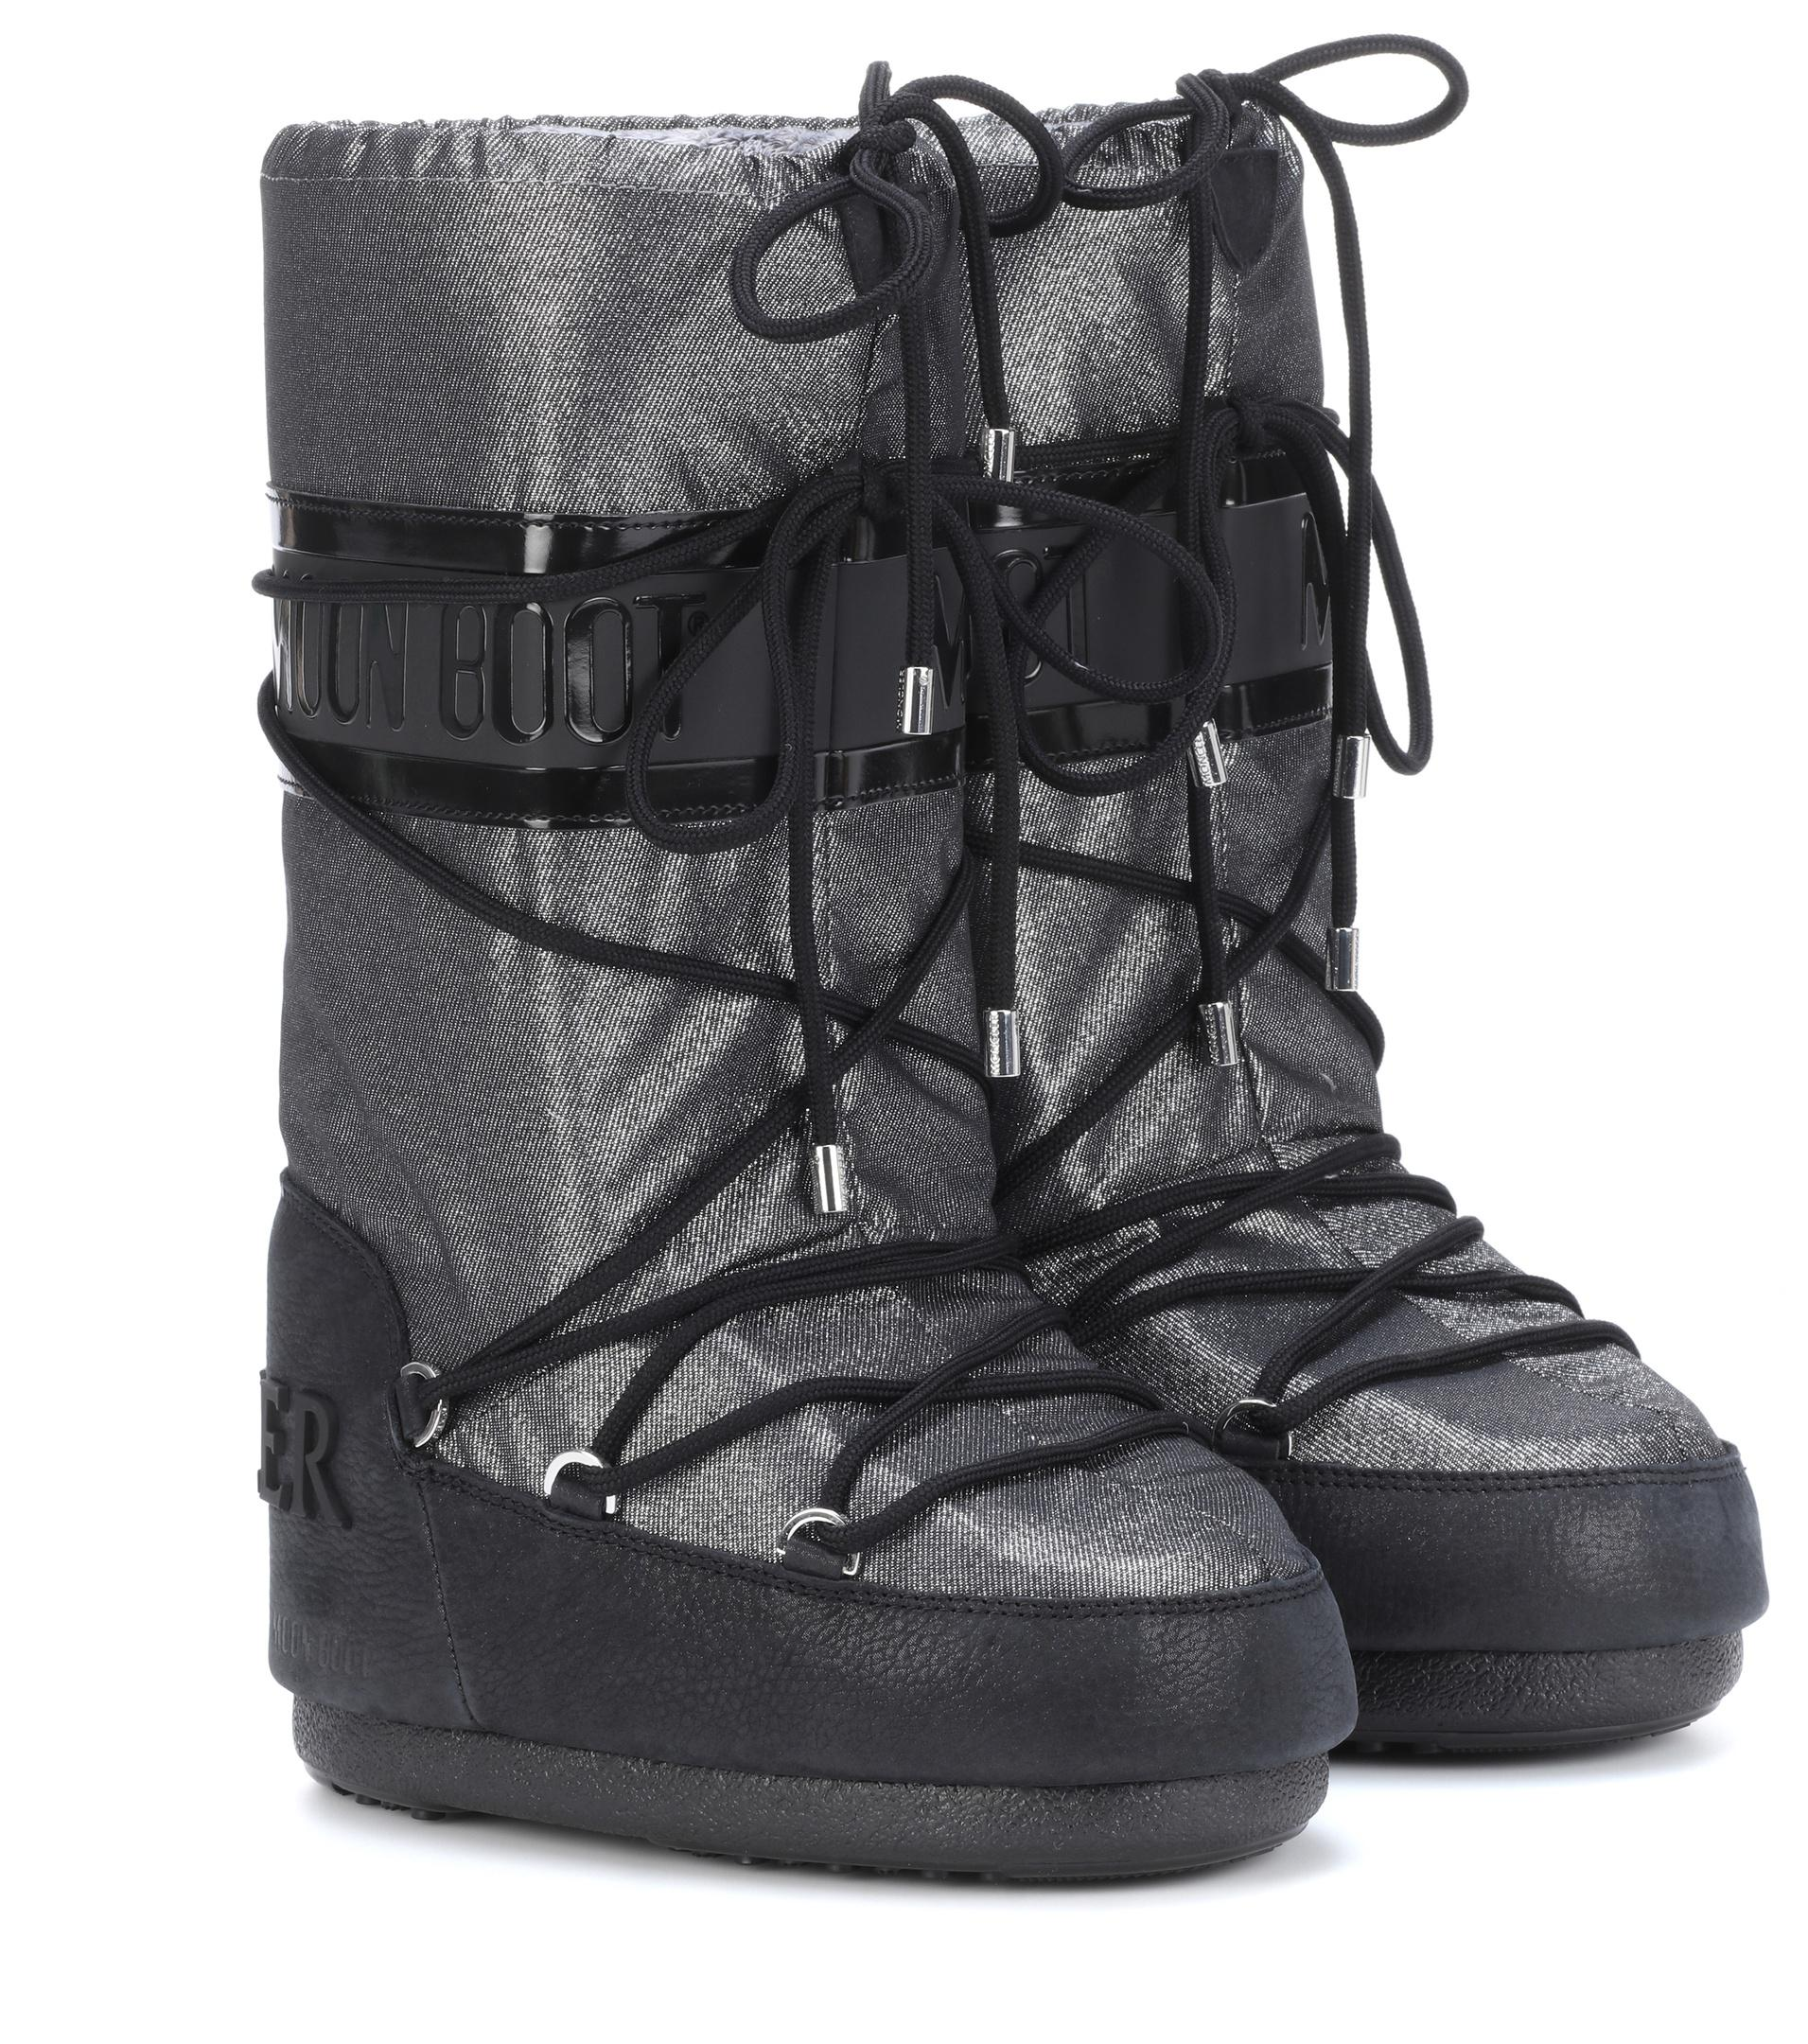 d1507c3424fe Moncler X Moon Boot® Ankle Boots in Metallic - Lyst